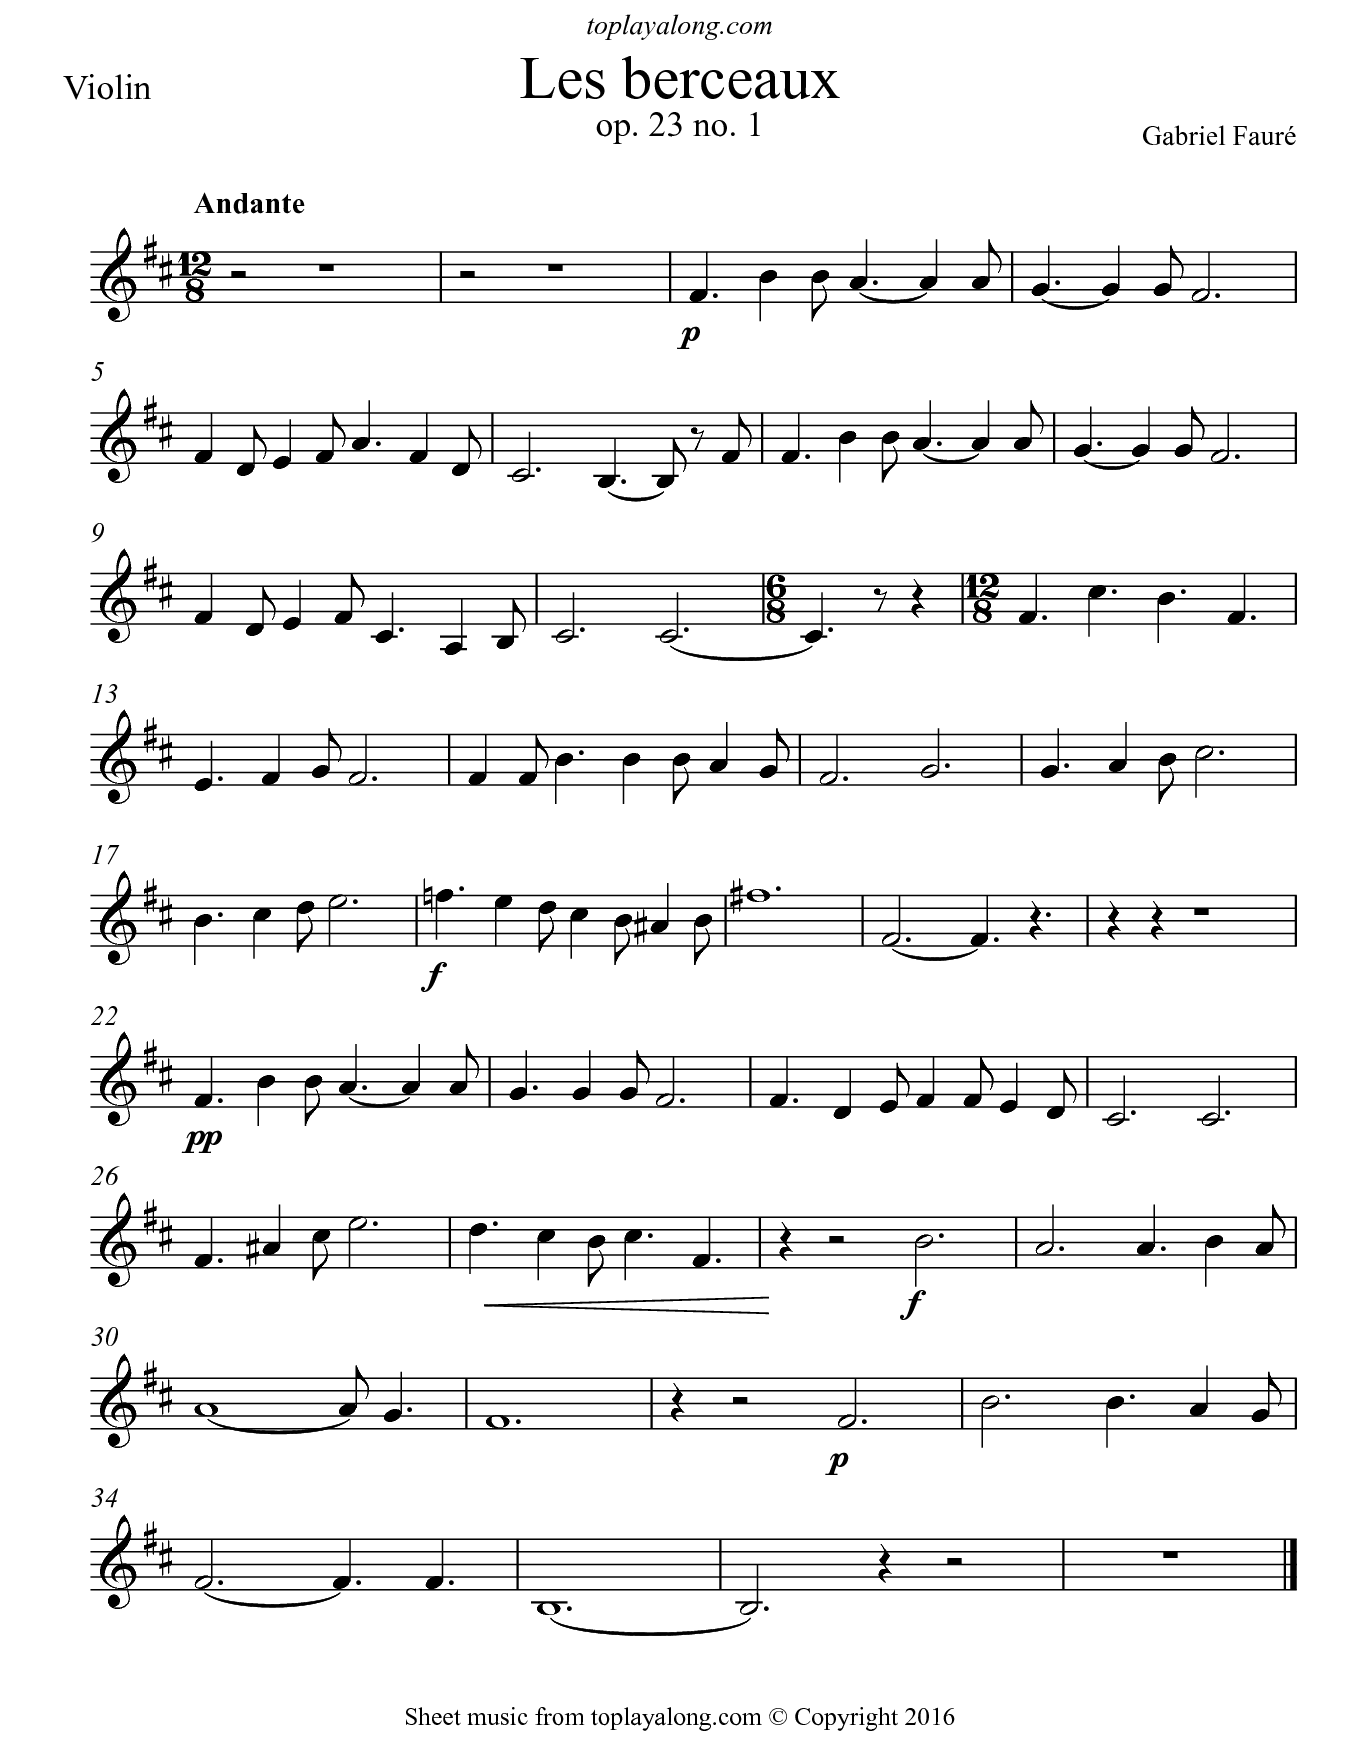 Les berceaux by Fauré. Sheet music for Violin, page 1.